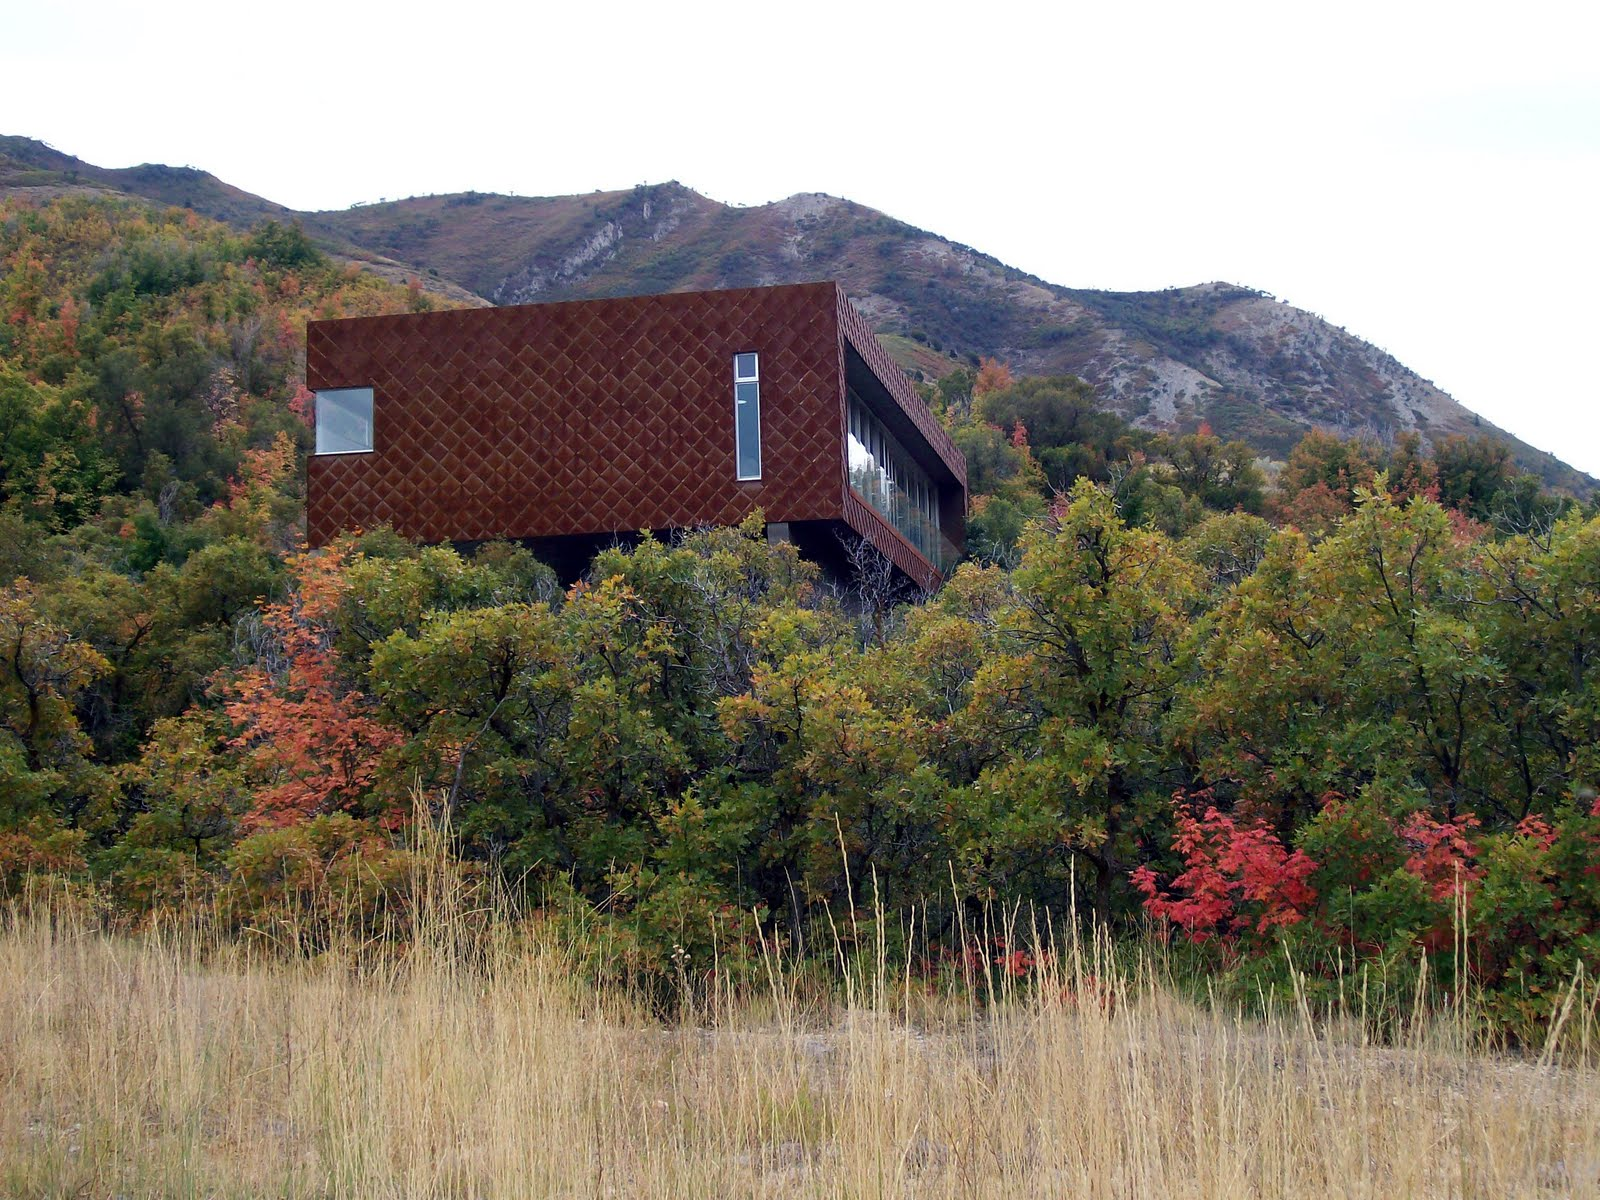 Last October While Exploring Emigration Canyon, I Randomly Came Upon This  Home And Was Blown Away By Its Stark Simplicity And Beauty. Design Inspirations